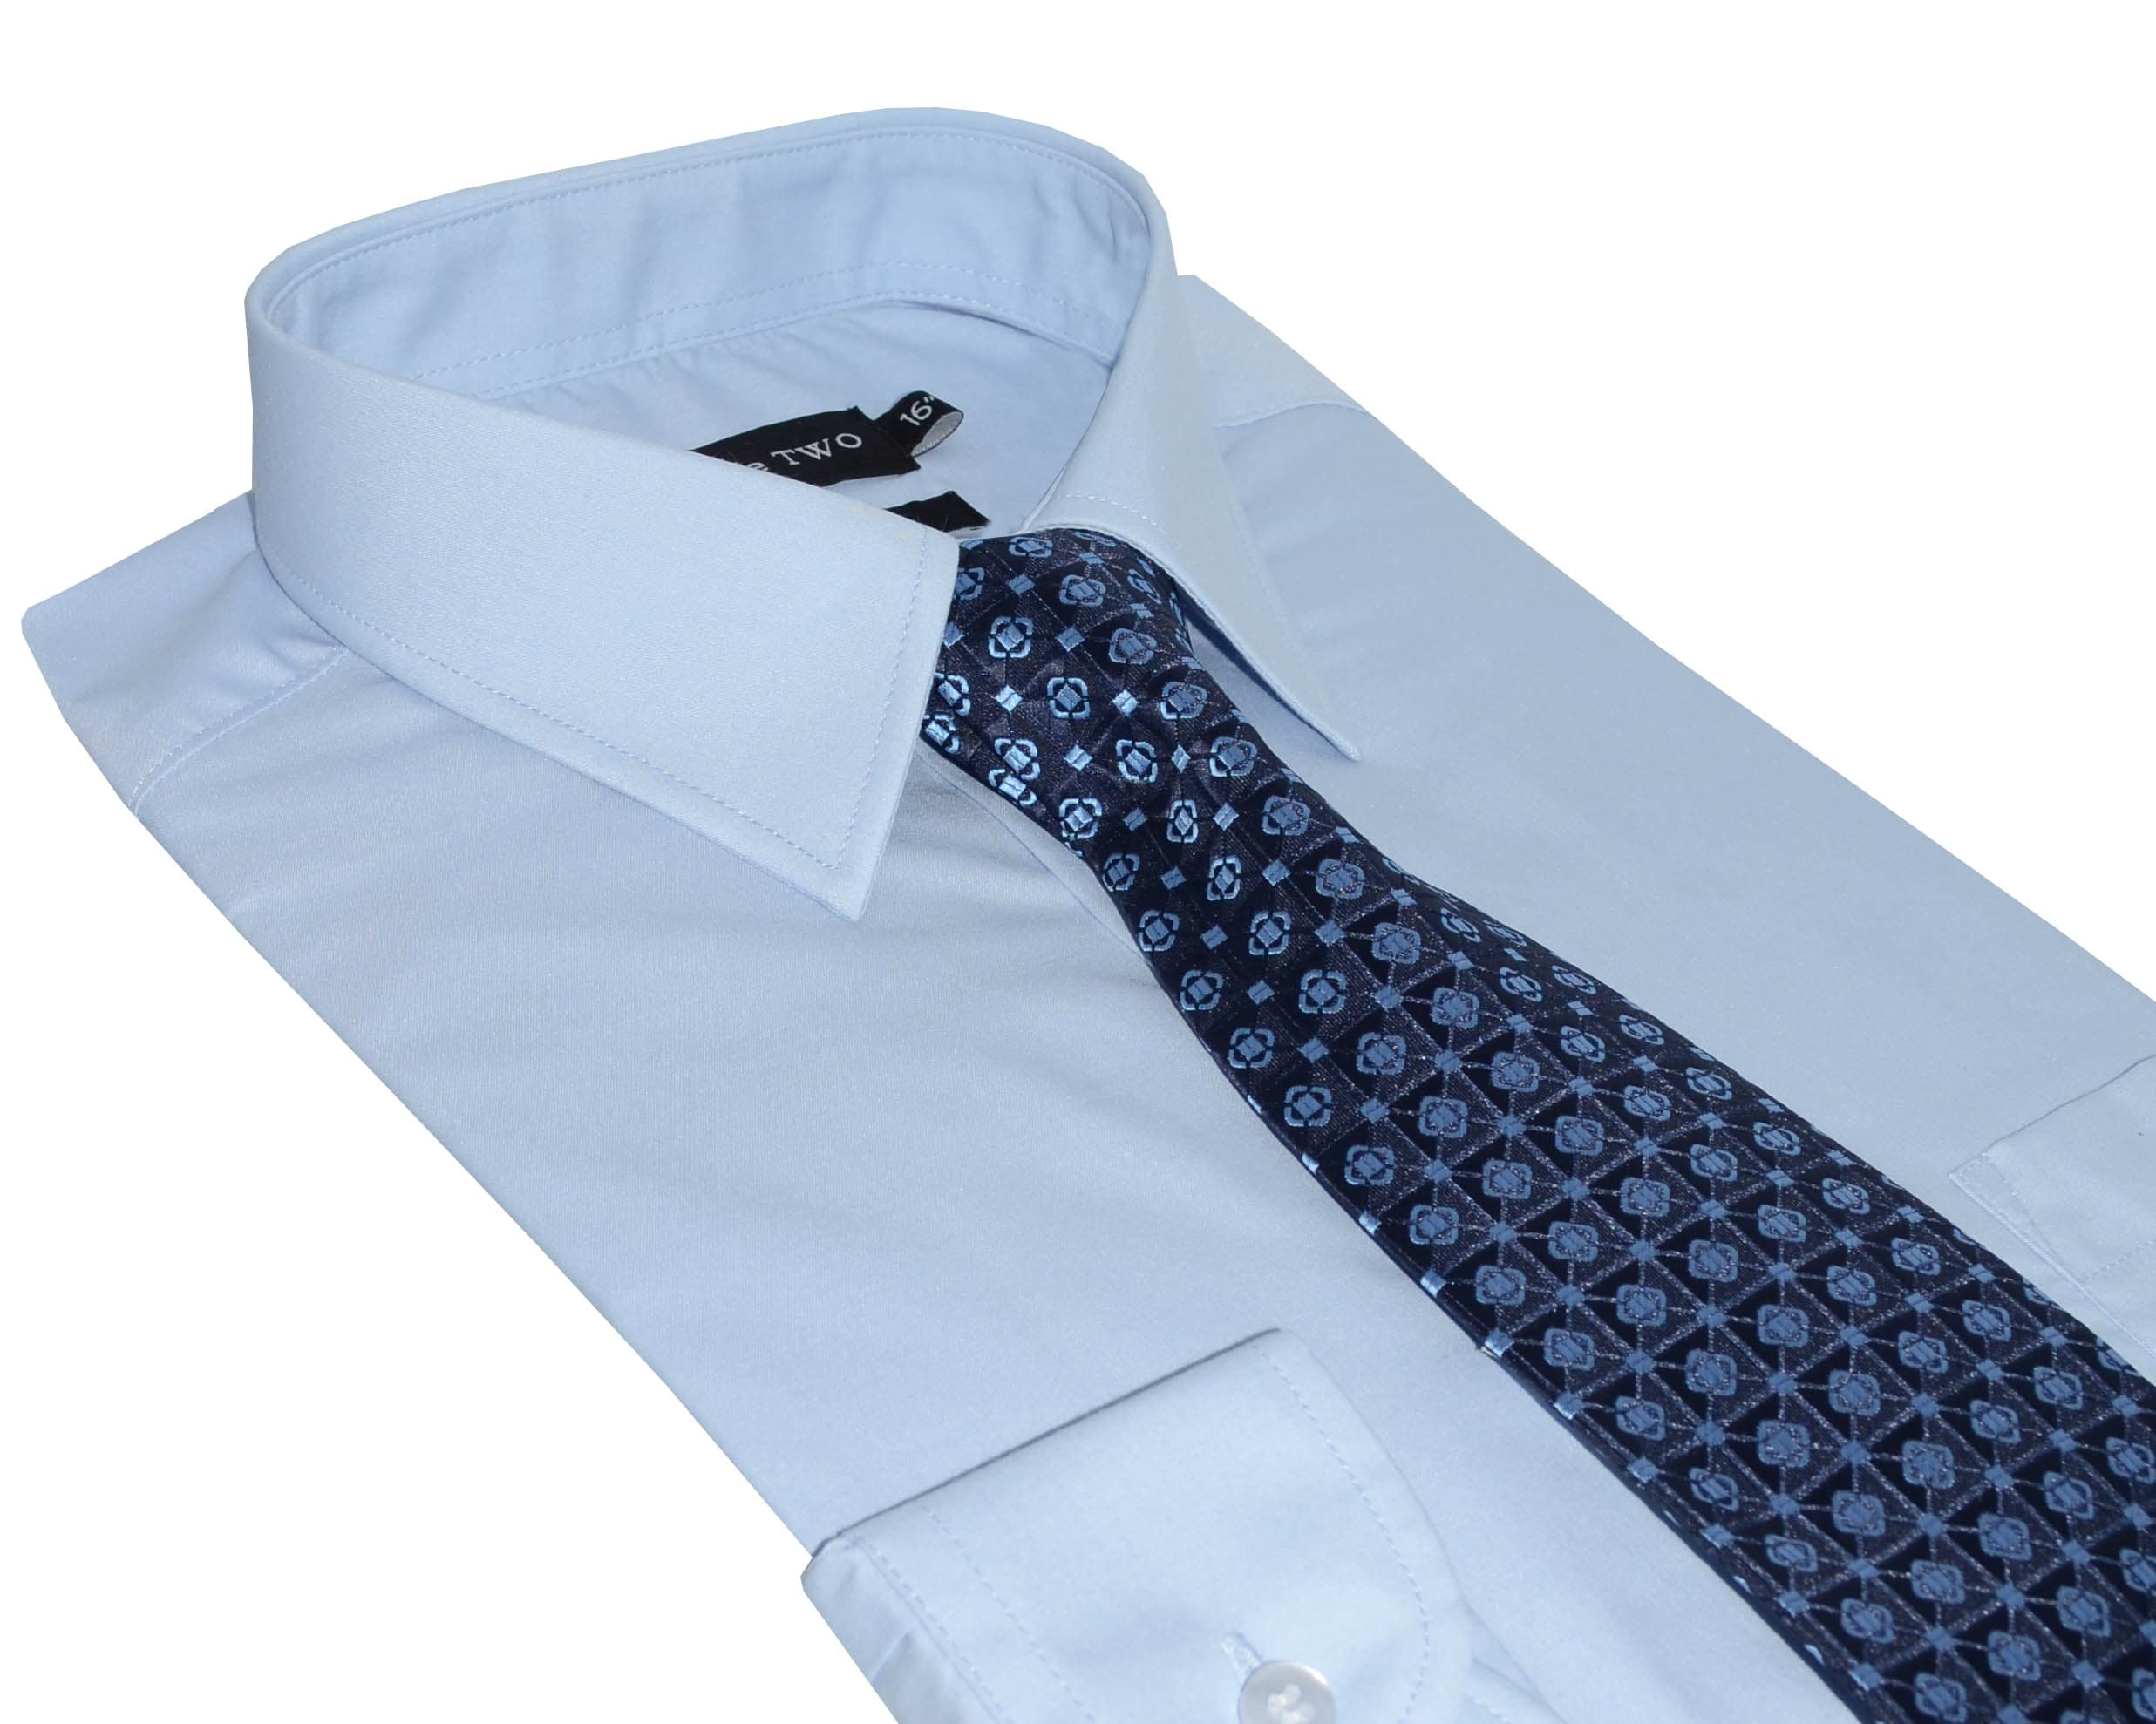 Double Two Blue Formal Shirt And Tie Set Shirt And Tie